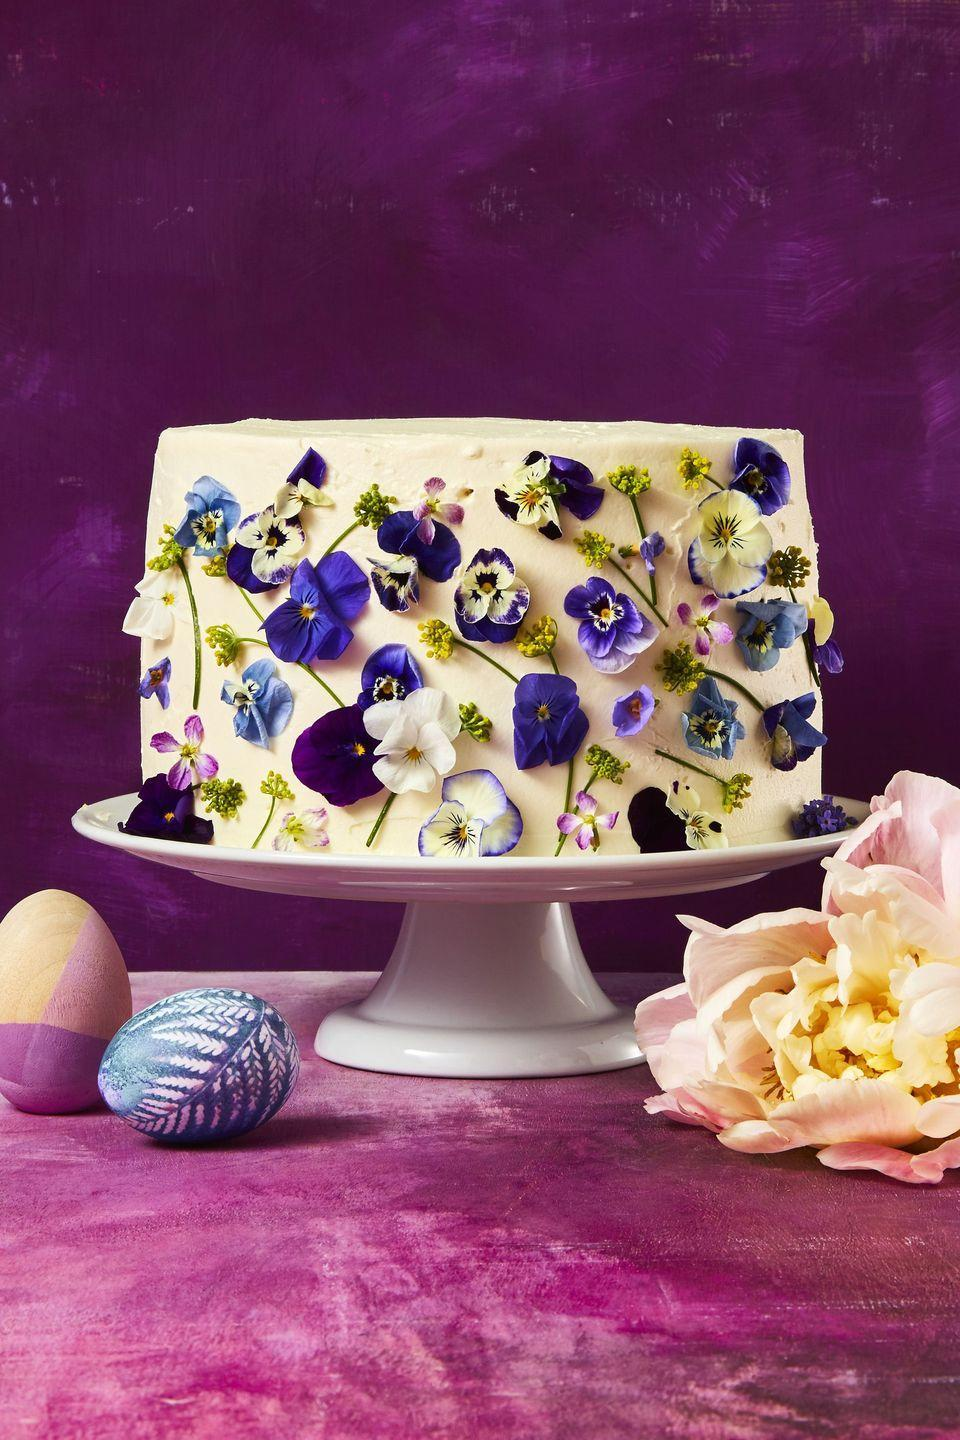 """<p>Combine two Mother's Day classics — sweets and flowers— in one stunning display.</p><p><a class=""""link rapid-noclick-resp"""" href=""""https://www.amazon.com/GEORLD-Pansies-Cupcake-Toppers-Decoration/dp/B07BNBC7JD/?tag=syn-yahoo-20&ascsubtag=%5Bartid%7C10055.g.19841885%5Bsrc%7Cyahoo-us"""" rel=""""nofollow noopener"""" target=""""_blank"""" data-ylk=""""slk:SHOP EDIBLE FLOWERS"""">SHOP EDIBLE FLOWERS</a></p><p><em><a href=""""https://www.goodhousekeeping.com/food-recipes/dessert/a48178/vanilla-blossom-cake-recipe/"""" rel=""""nofollow noopener"""" target=""""_blank"""" data-ylk=""""slk:Get the recipe for Vanilla Blossom Cake »"""" class=""""link rapid-noclick-resp"""">Get the recipe for Vanilla Blossom Cake »</a><strong><br></strong></em></p><p><strong>RELATED: </strong><a href=""""https://www.goodhousekeeping.com/food-recipes/dessert/g30468803/easy-spring-desserts/"""" rel=""""nofollow noopener"""" target=""""_blank"""" data-ylk=""""slk:30 Spring Desserts Perfect for Entertaining"""" class=""""link rapid-noclick-resp"""">30 Spring Desserts Perfect for Entertaining</a></p>"""